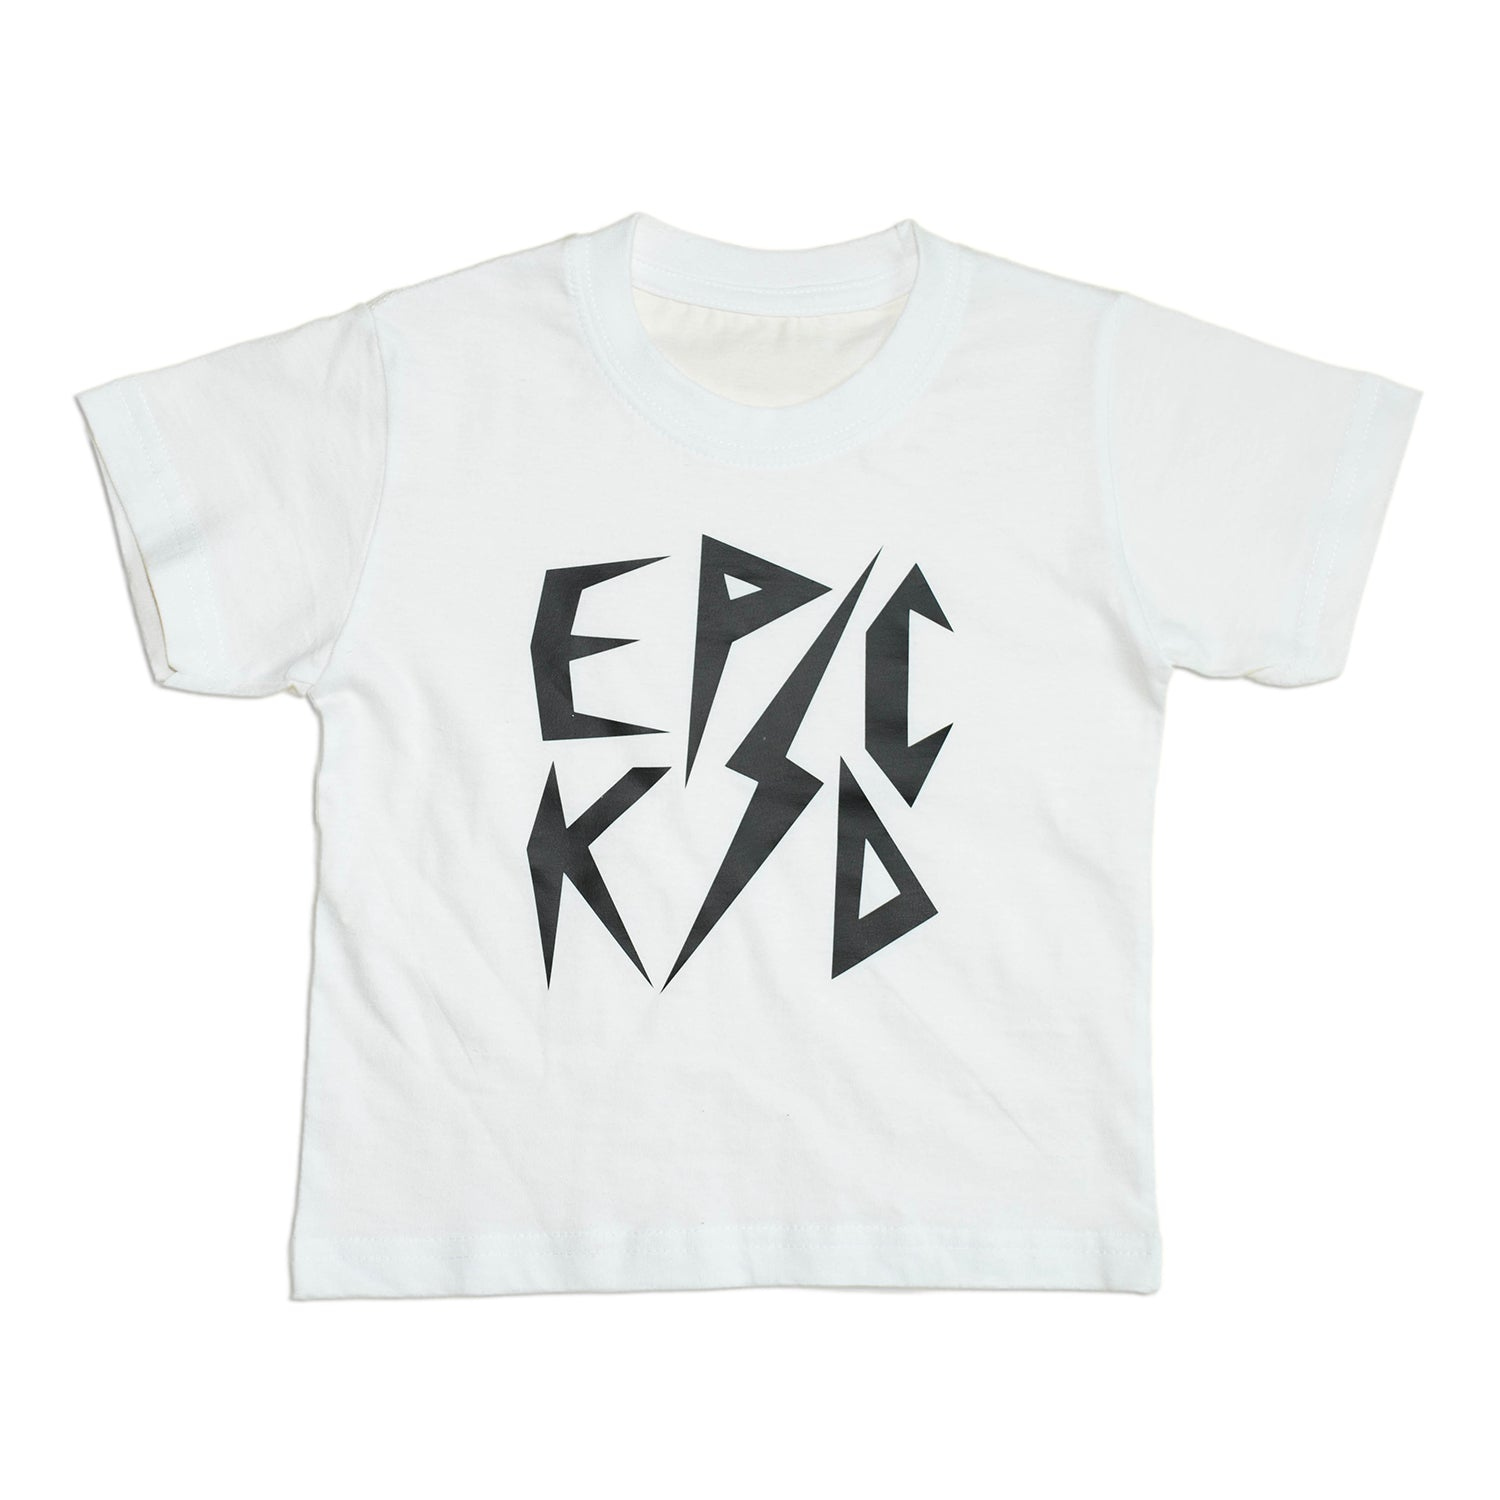 Epic Kid T-Shirt